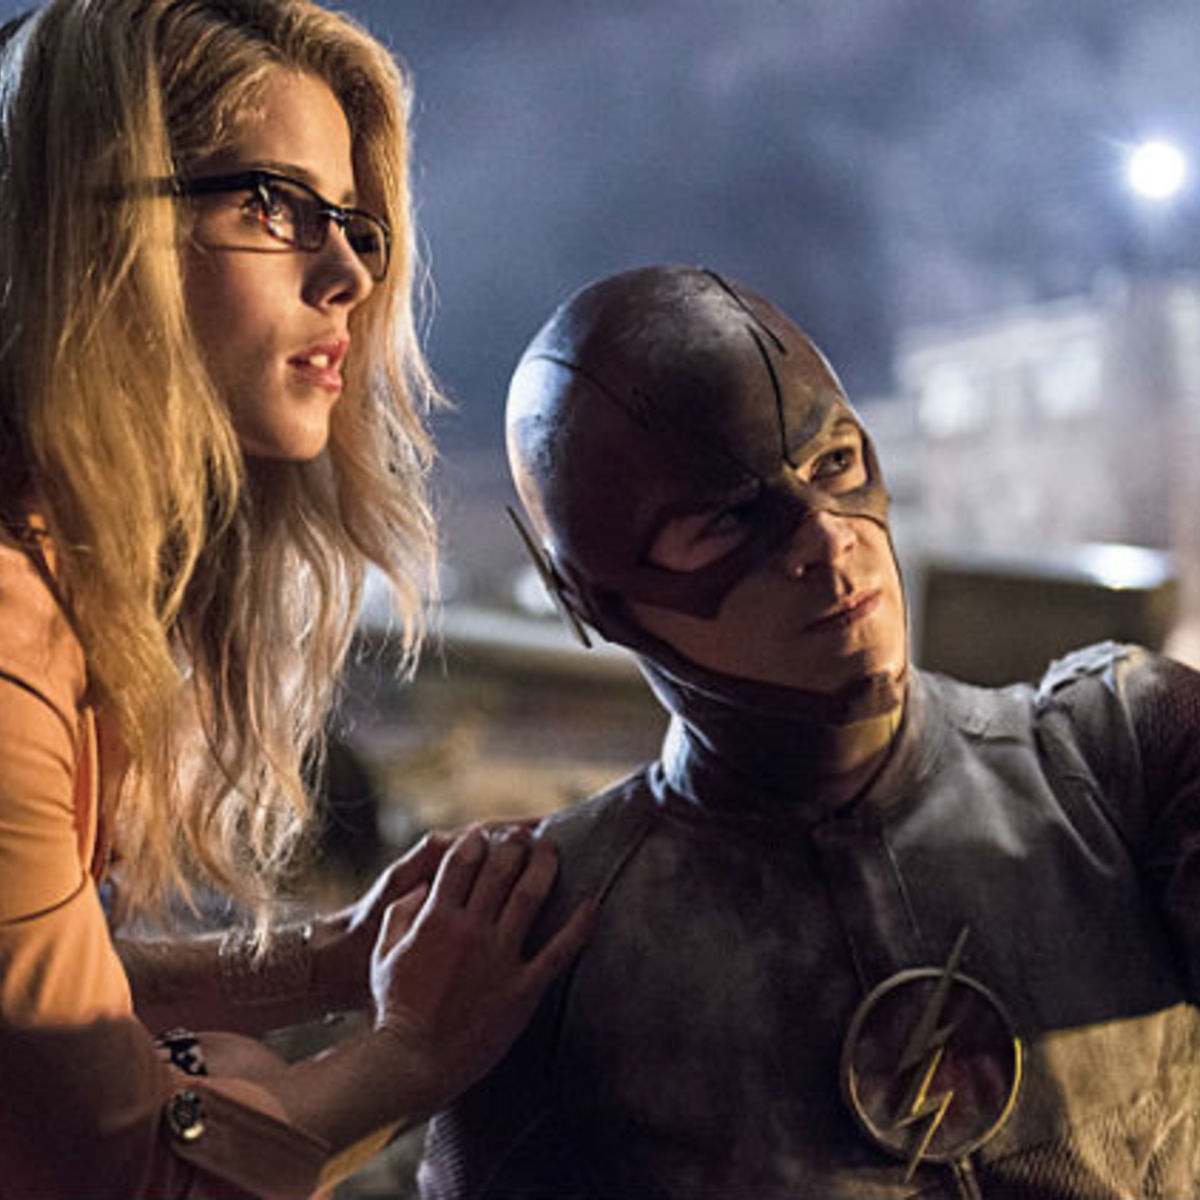 the-flash-episode-4-barry-felicity-date.jpg